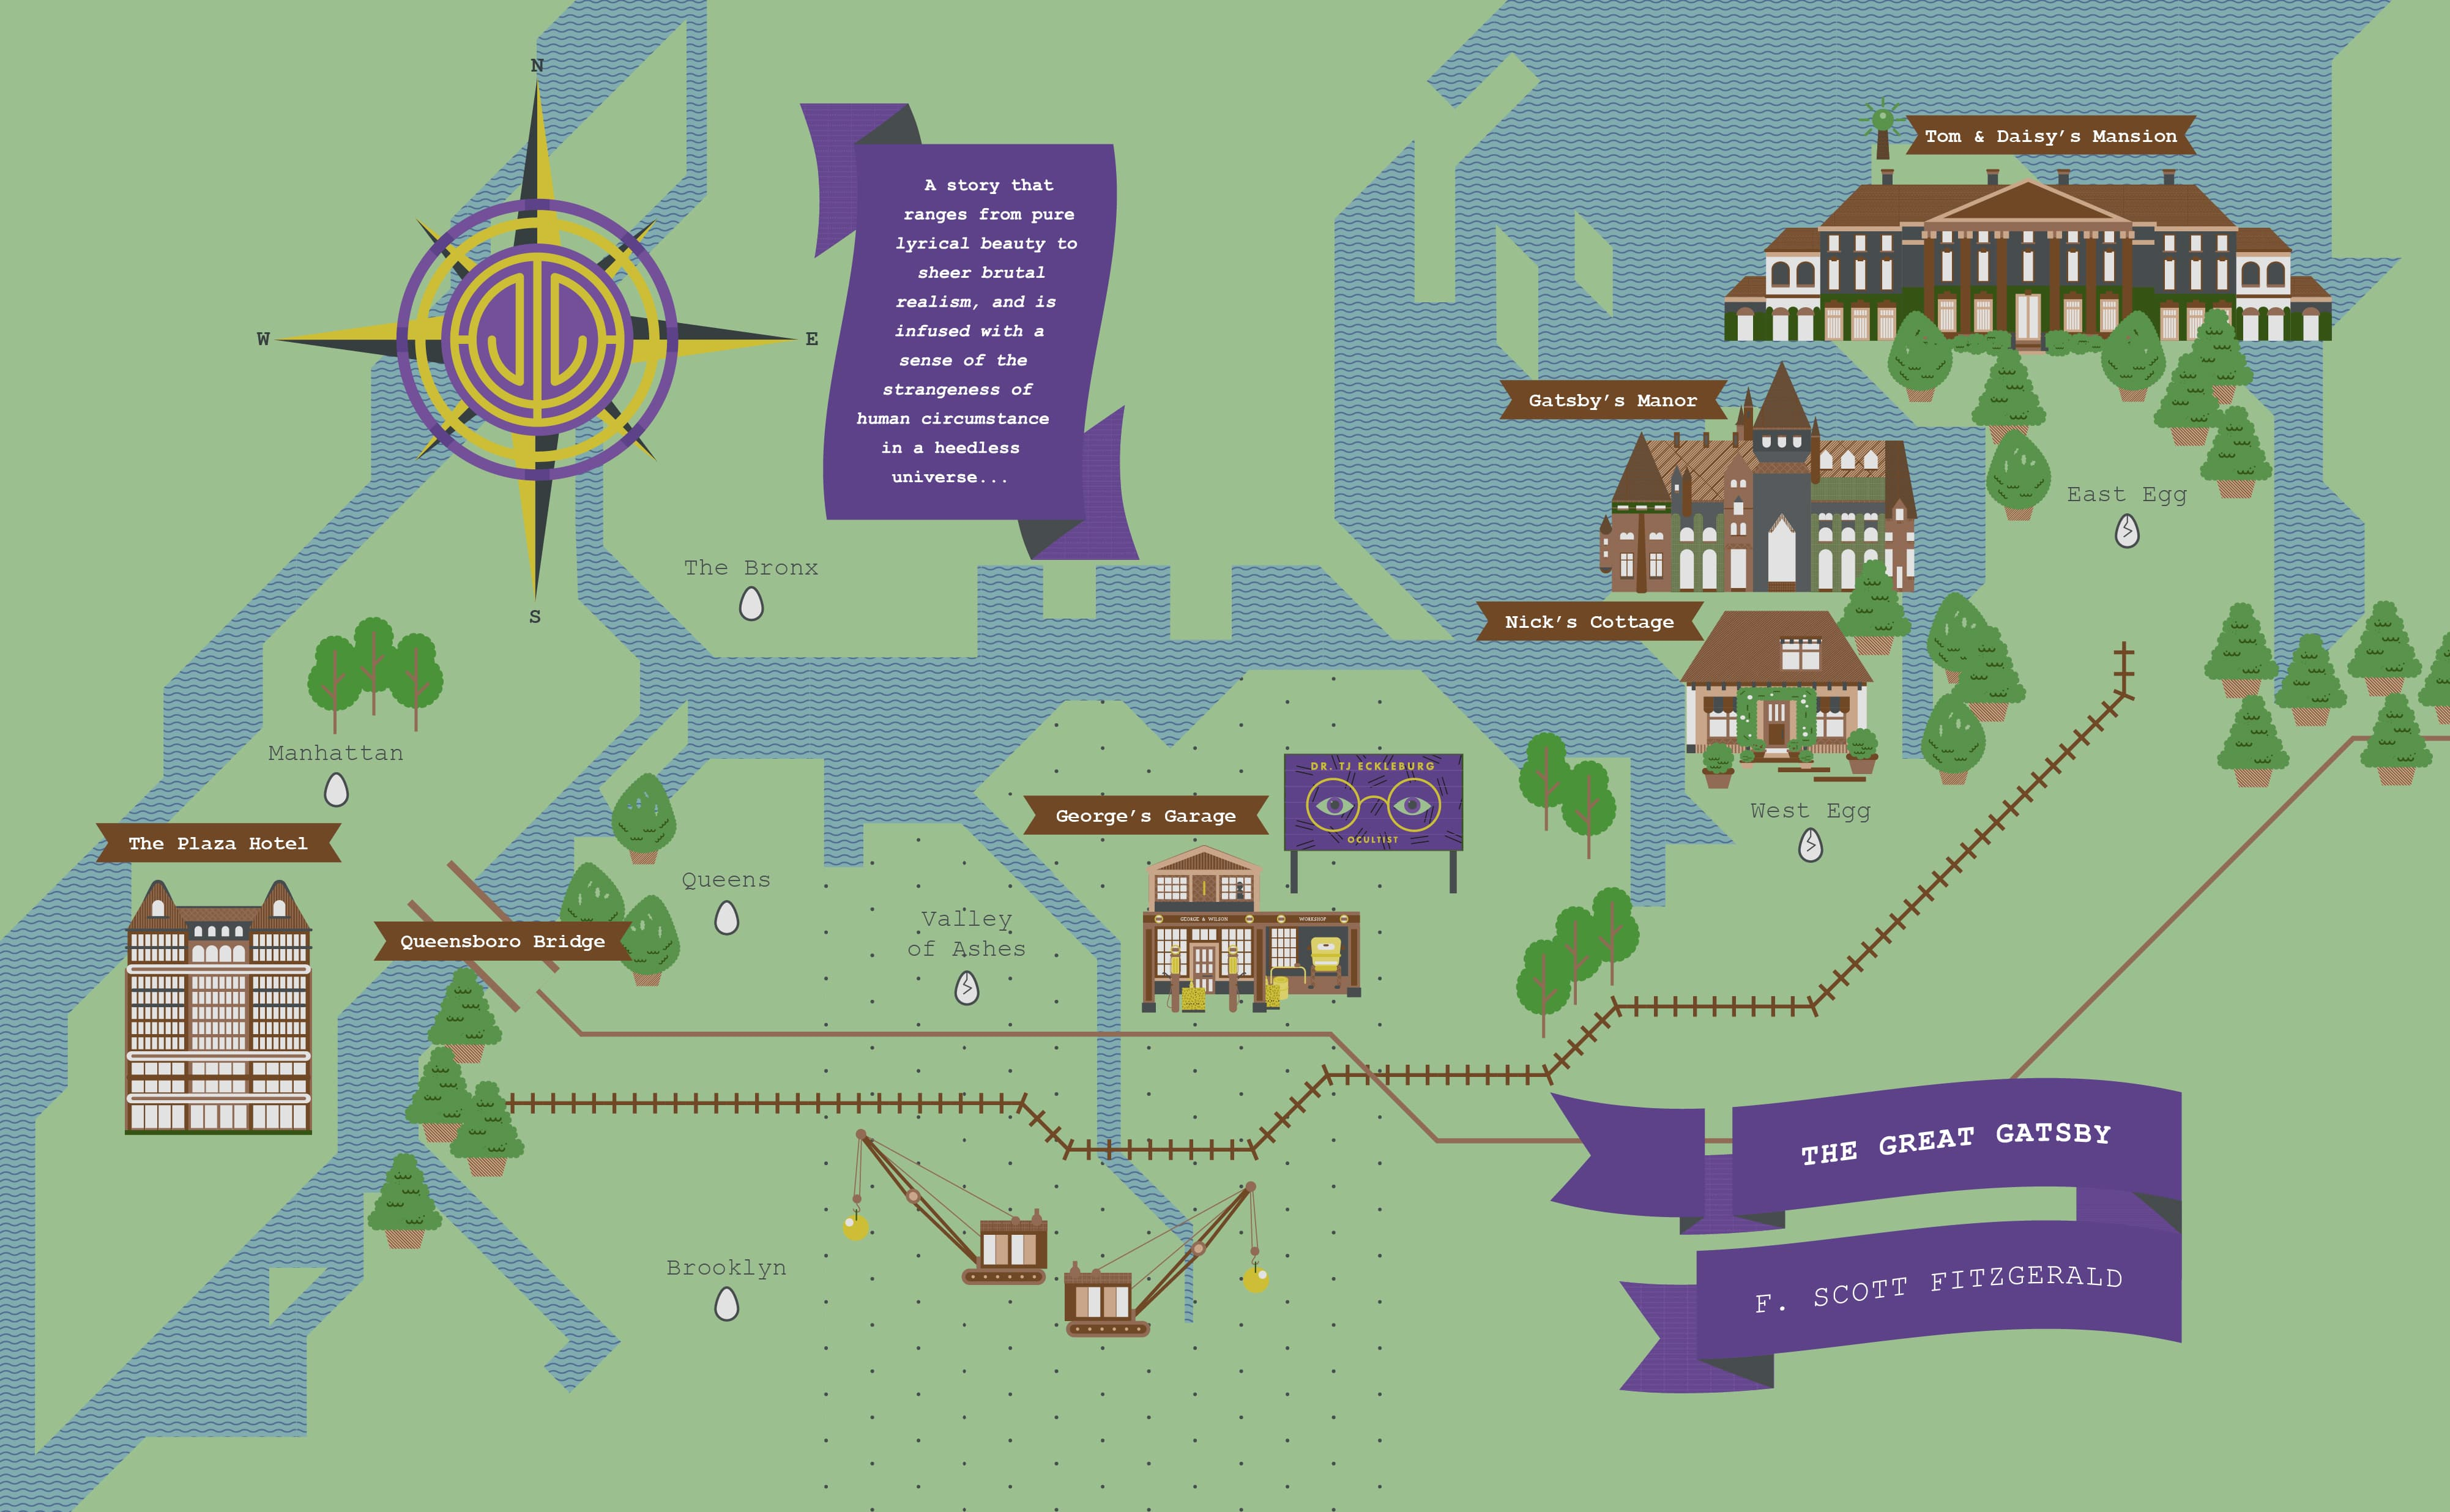 The Great Gatsby Map The Great Gatsby Map Design Survey